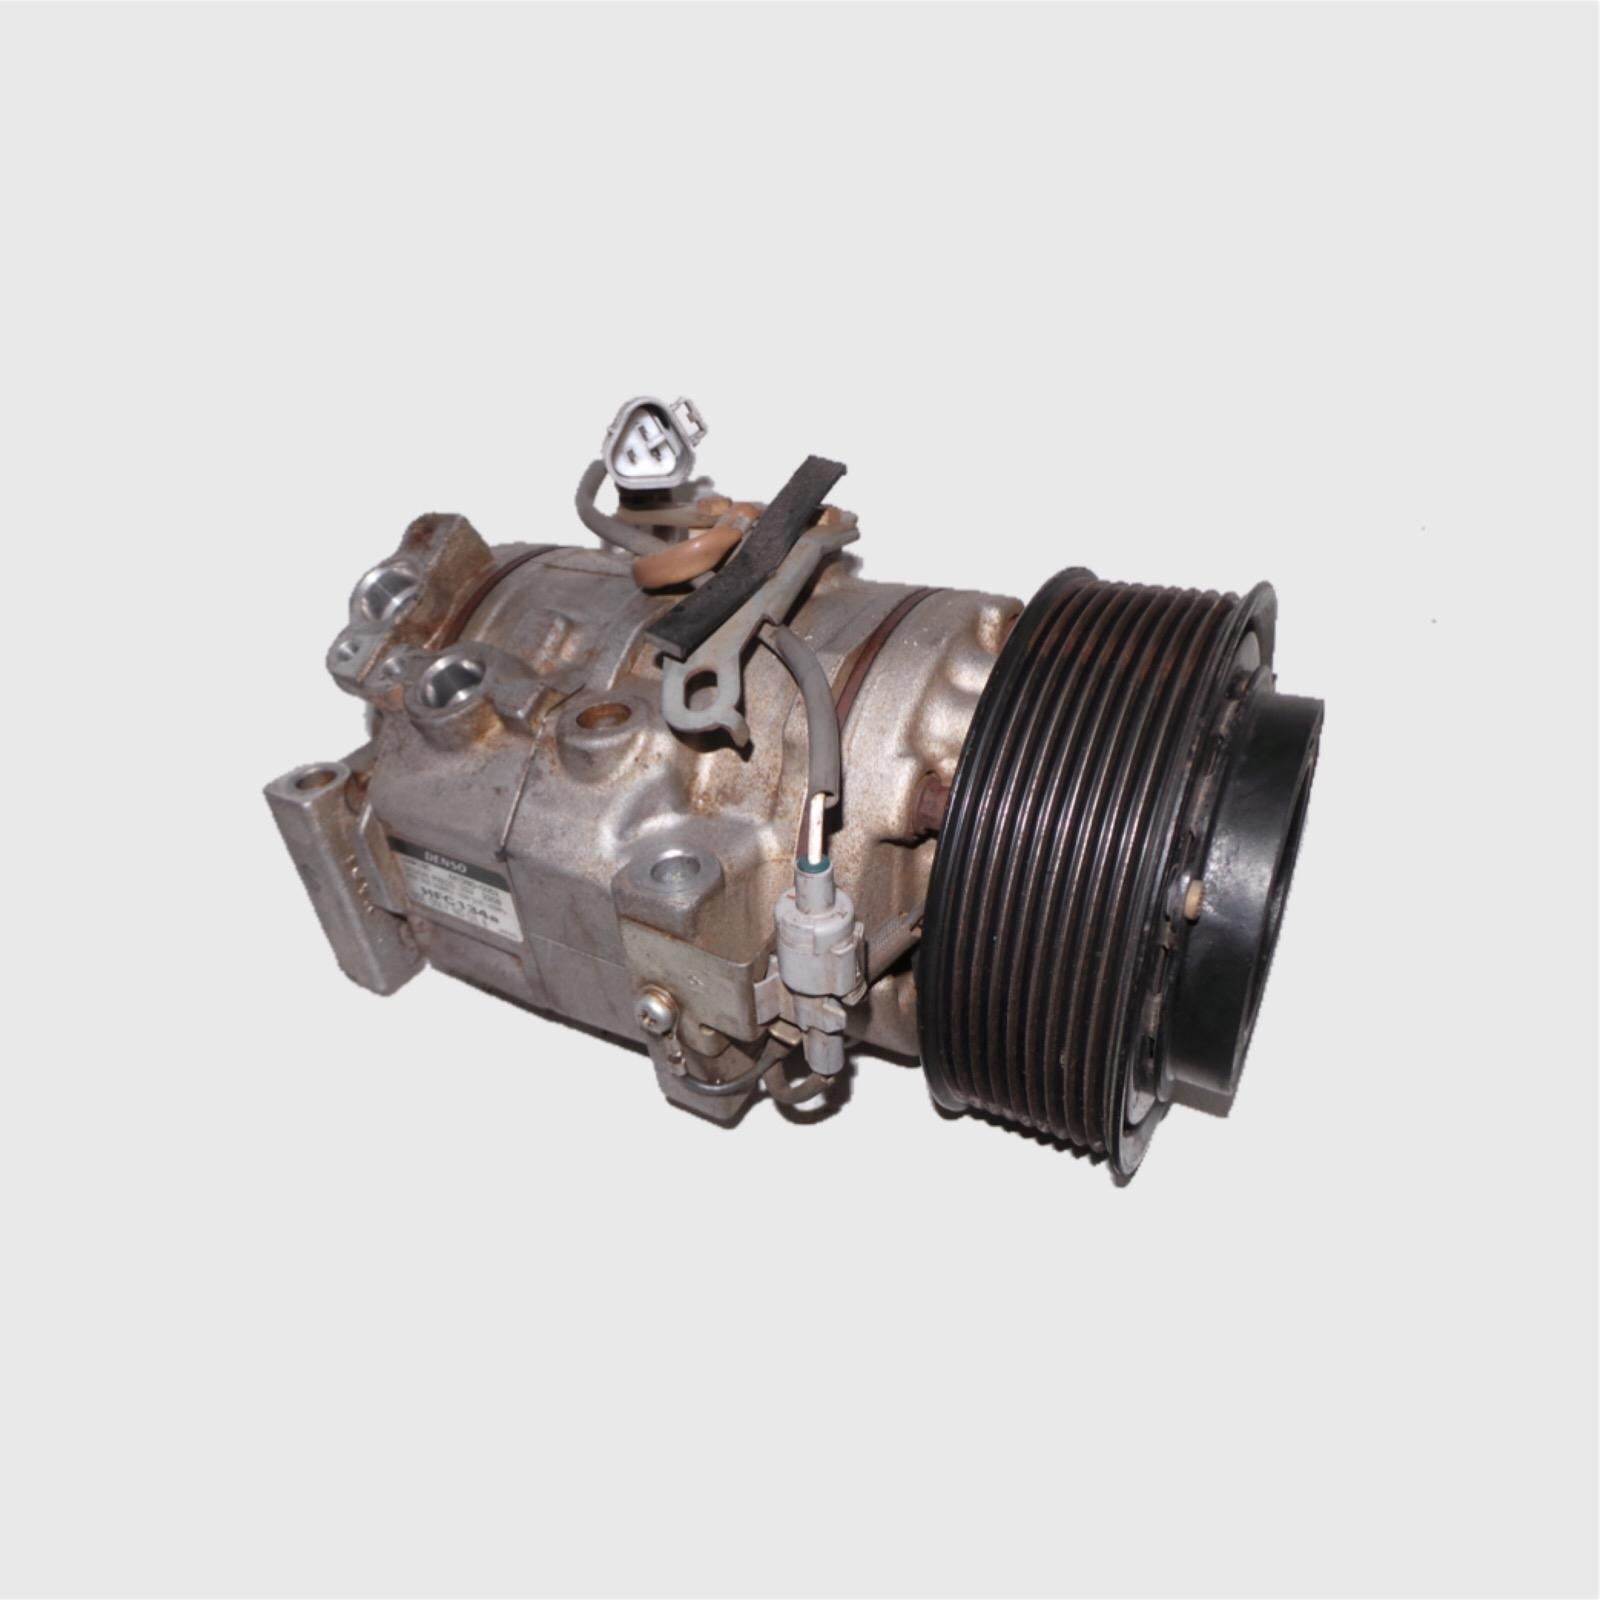 TOYOTA LANDCRUISER, A/C Compressor, 200 SERIES, 4.5, 1VD-FTV, DIESEL, TWIN TURBO, 11/07-